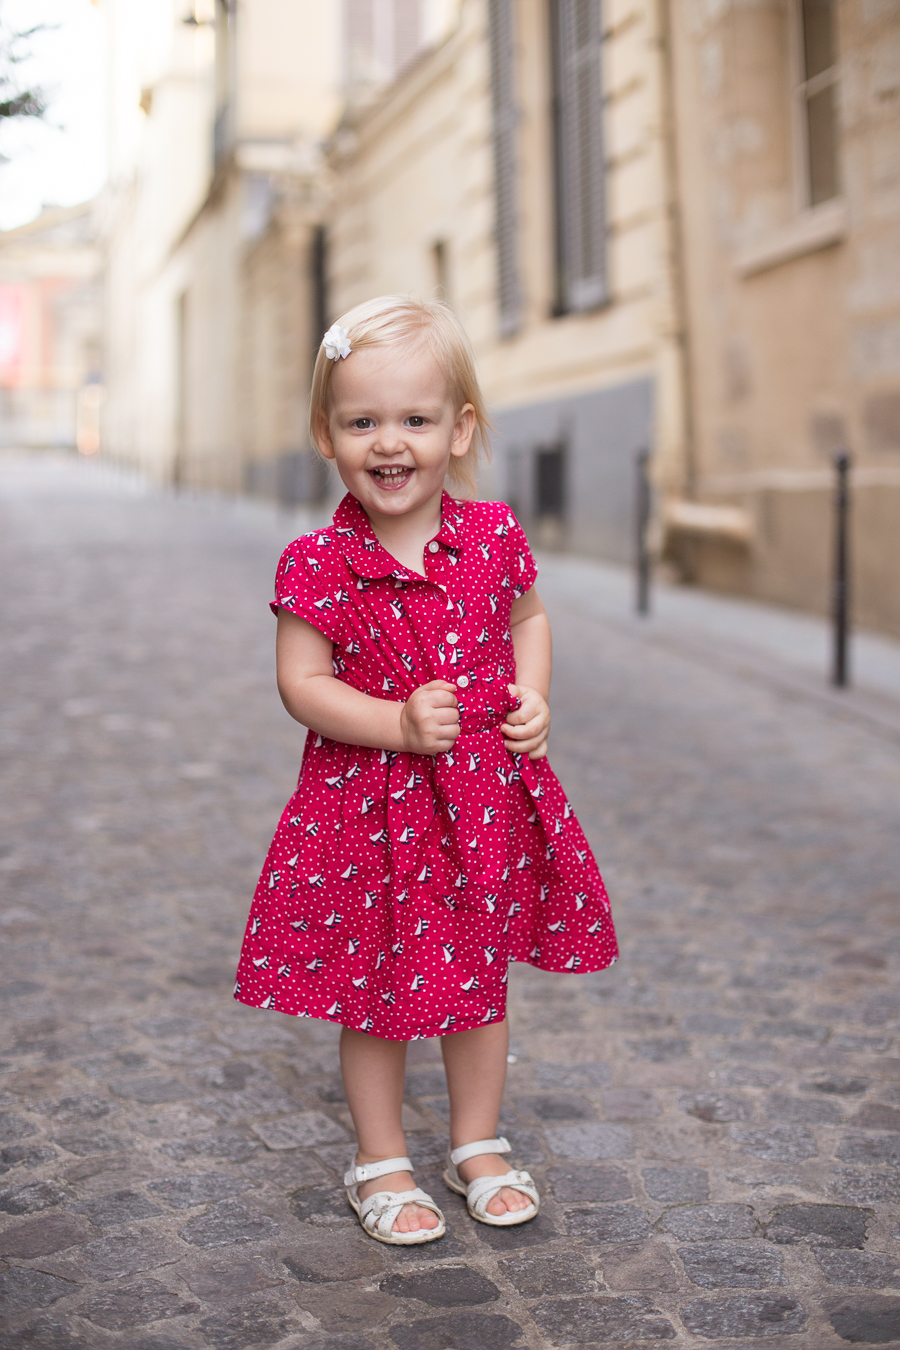 how-to-photograph-kids-tips-tricks